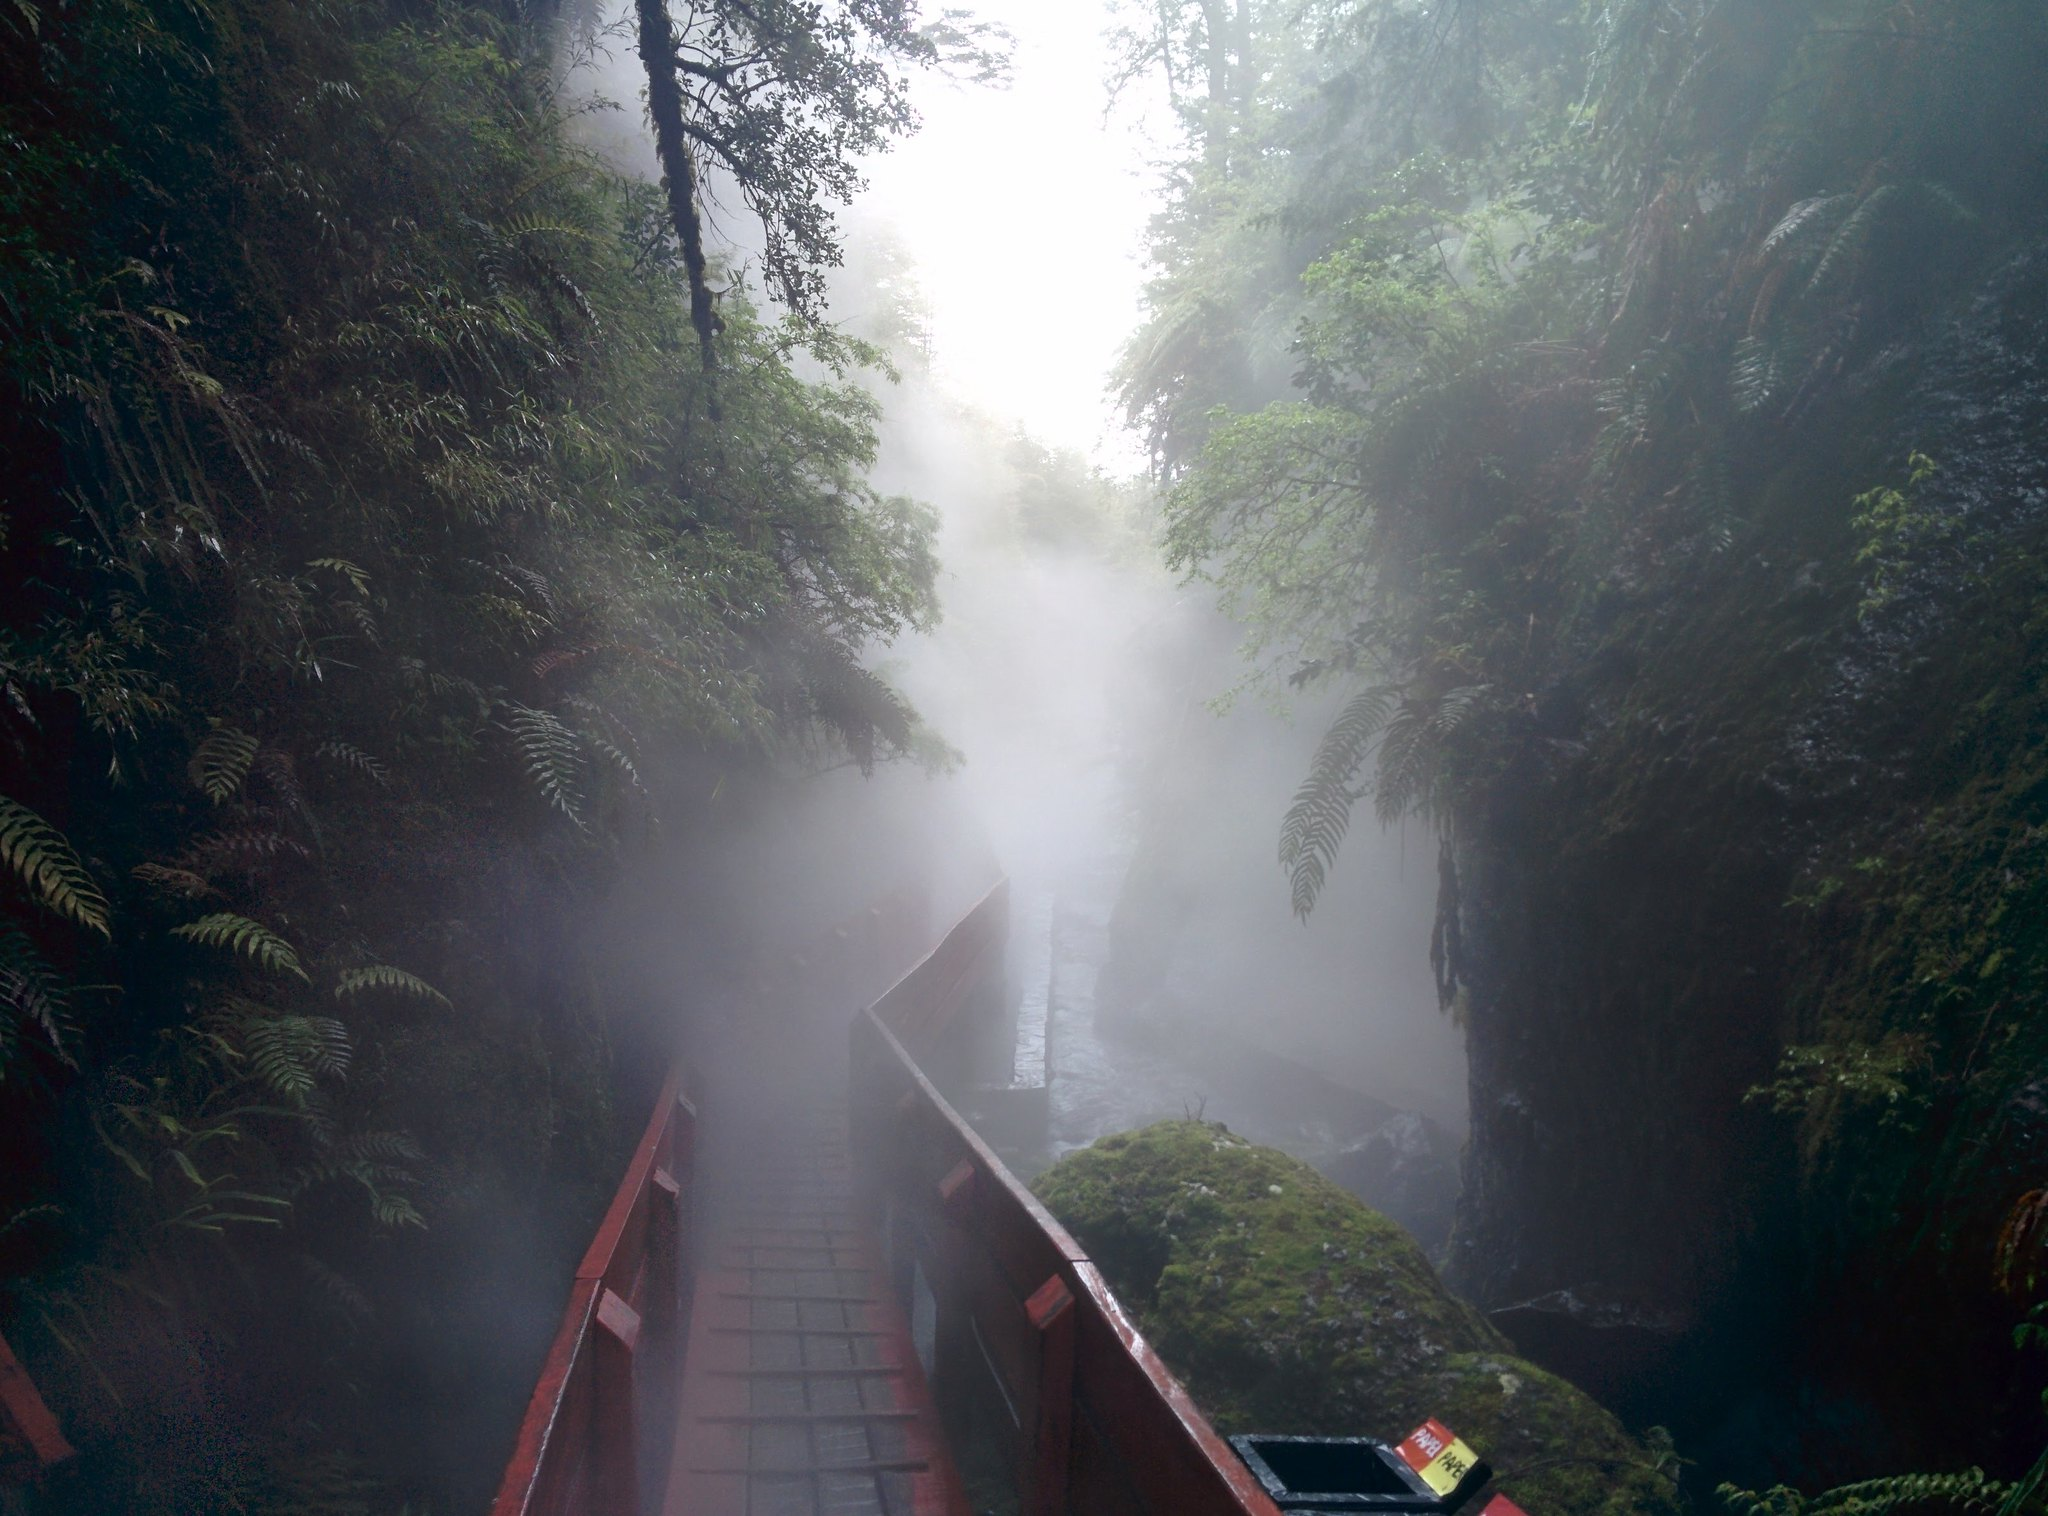 The misty walkway leading away from the waterfall